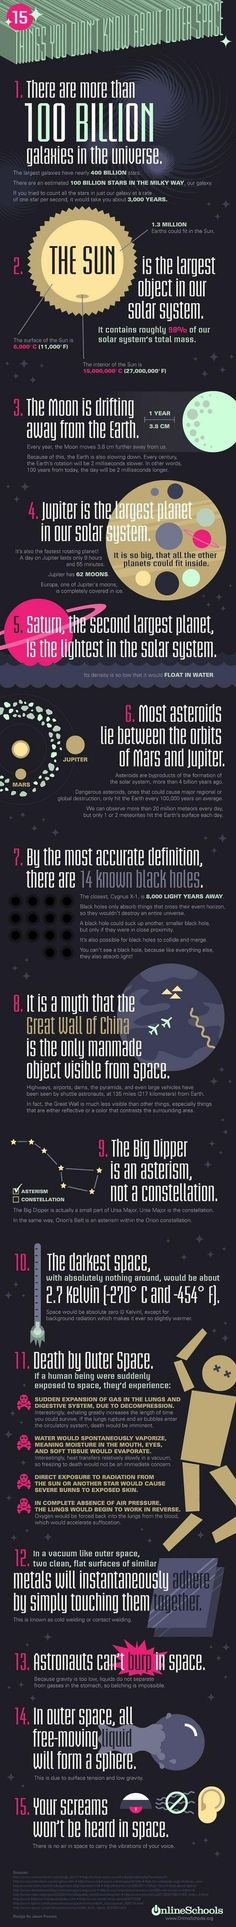 15 Things You Didn't Know About Outer Space... (Fact 5 is wrong: According to the picture, yes, Jupiter is the second largest planet, and Saturn's density is the lightest in the entire solar system, however, the planet itself is only lighter than Jupiter and Neptune, making Saturn the 3rd heaviest planet in the solar system)